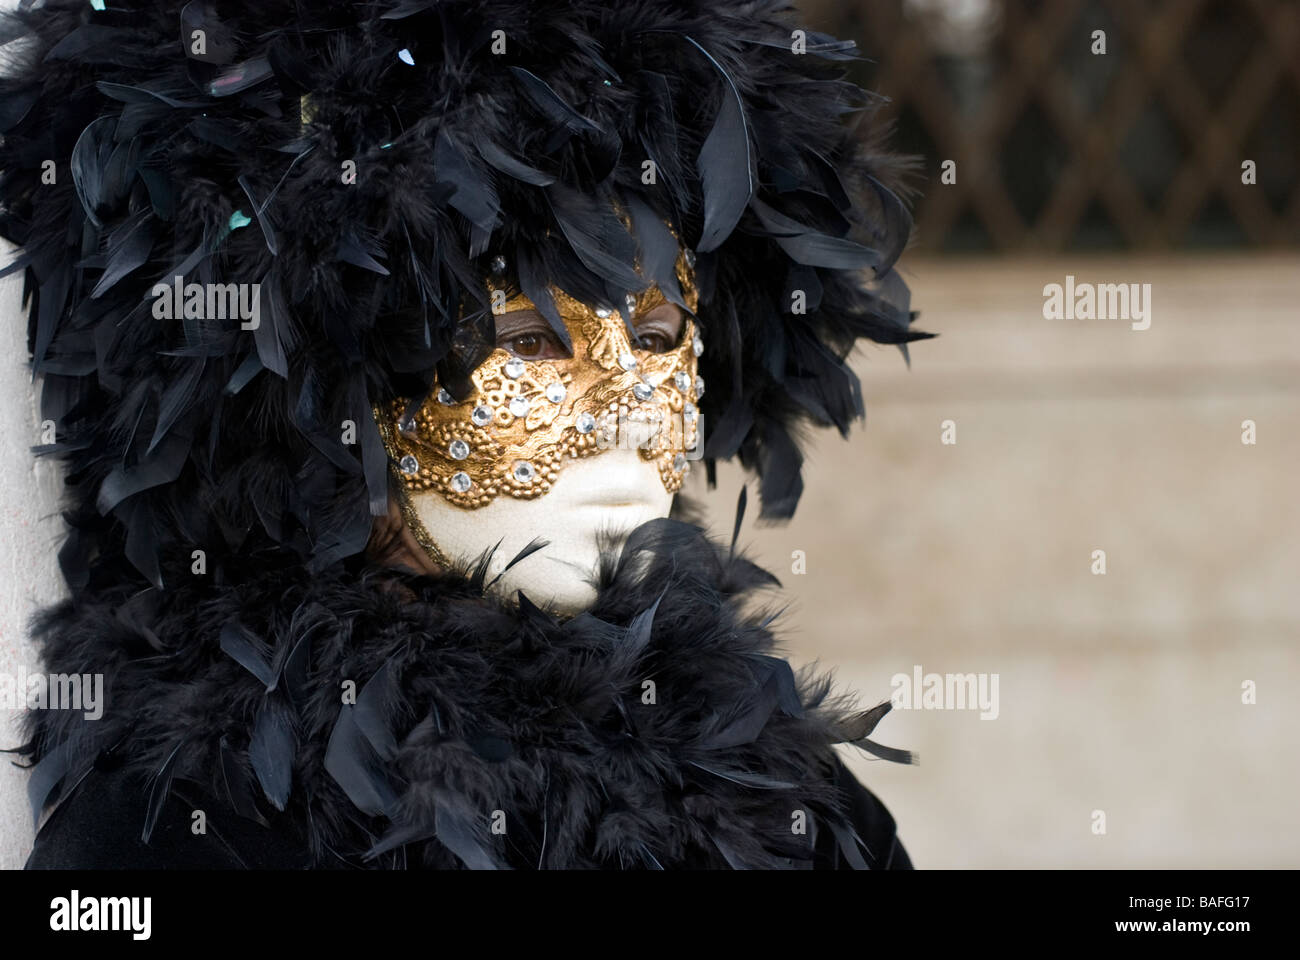 Single girl in a venetian carnival disguise with a gold mask and black plumes - Stock Image